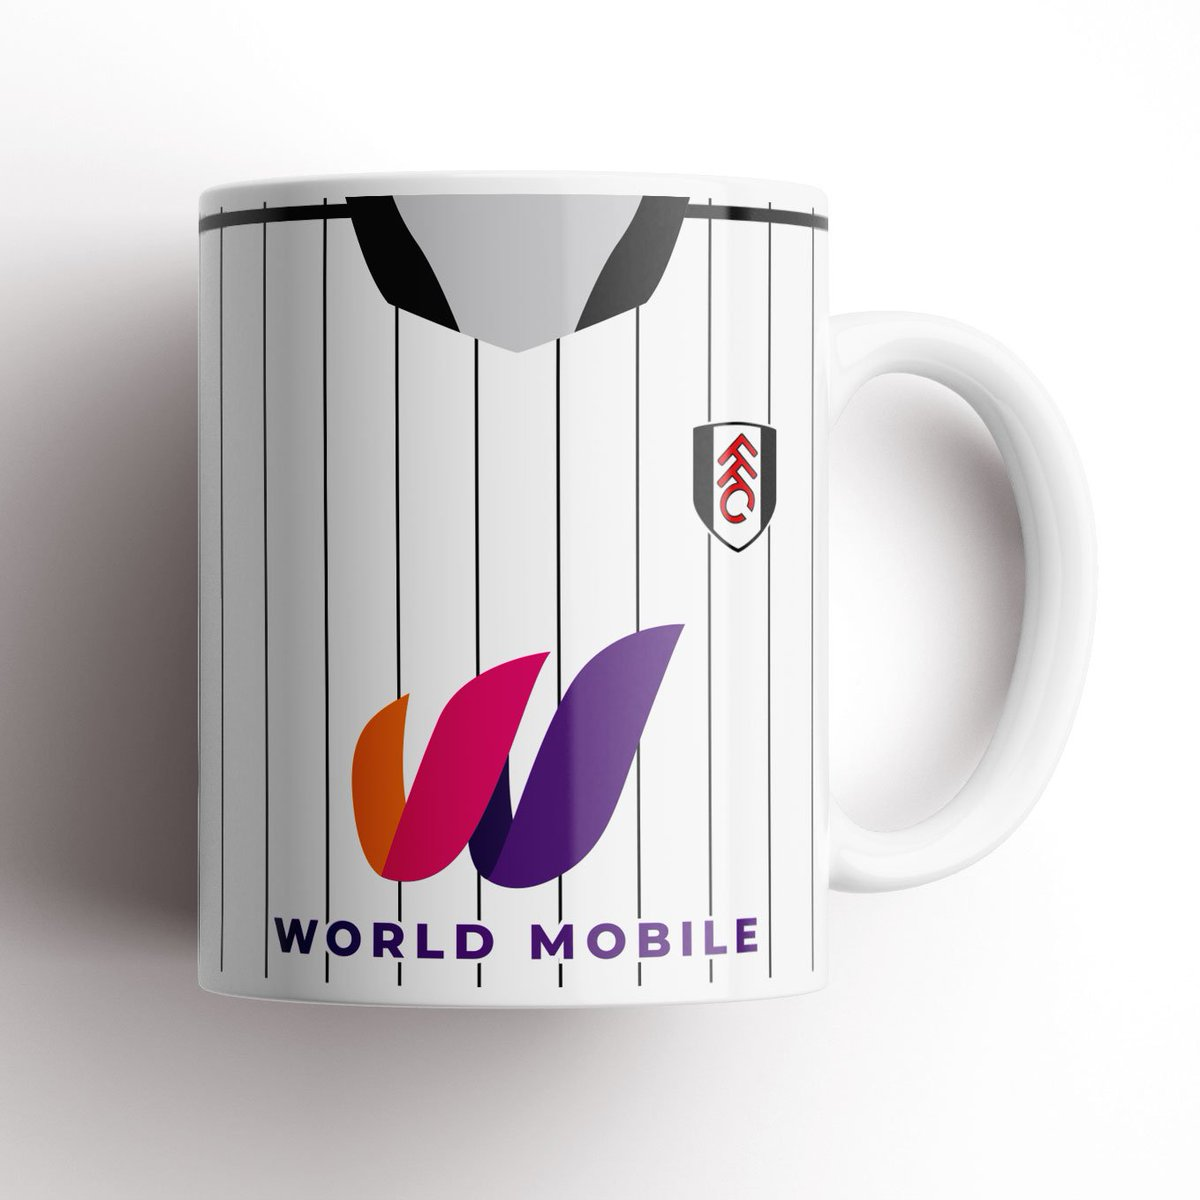 We've heard that #Coffee from #Zanzibar tastes even better from a #FFC X #WorldMobile mug!  #StrongerConnected